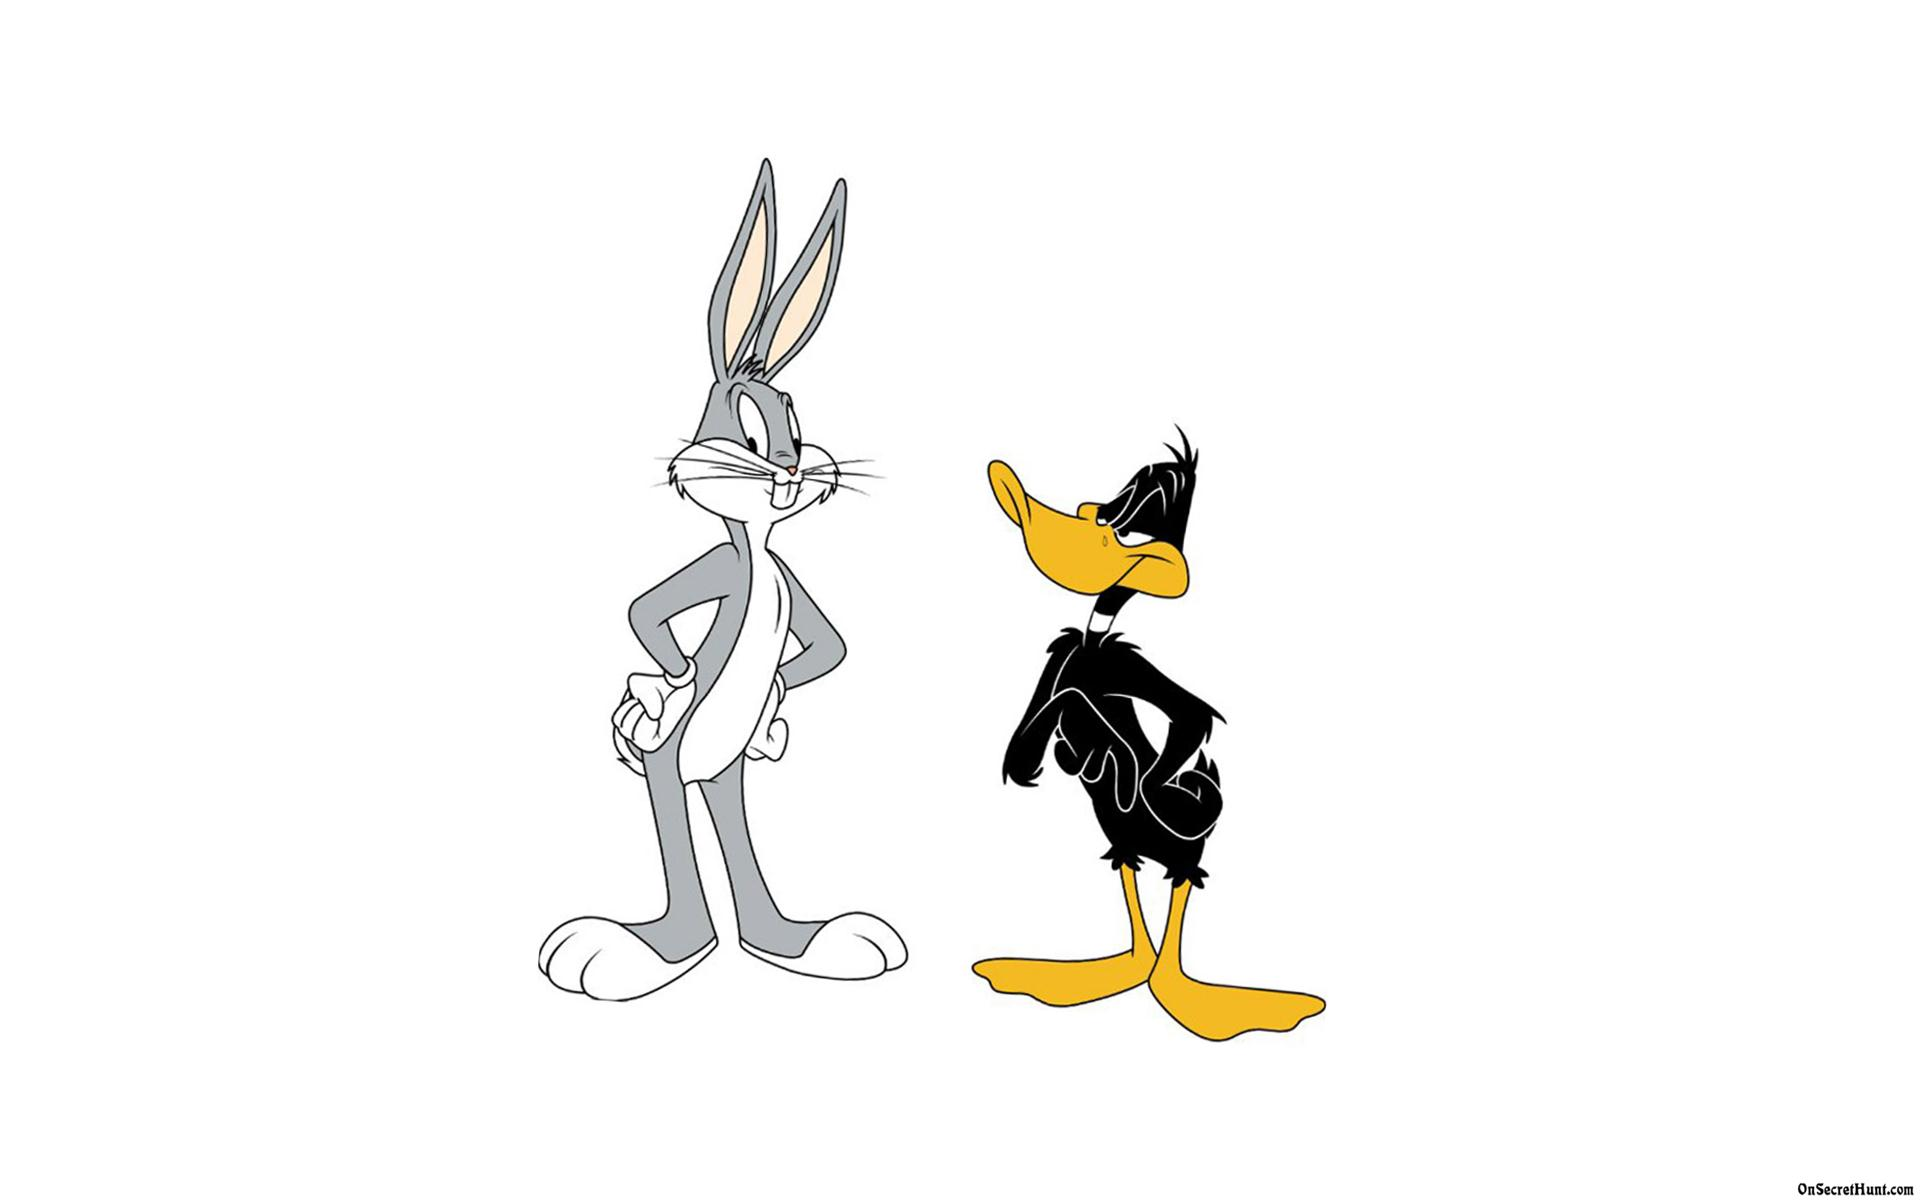 Bugs Bunny Wallpapers - Wallpaper Cave